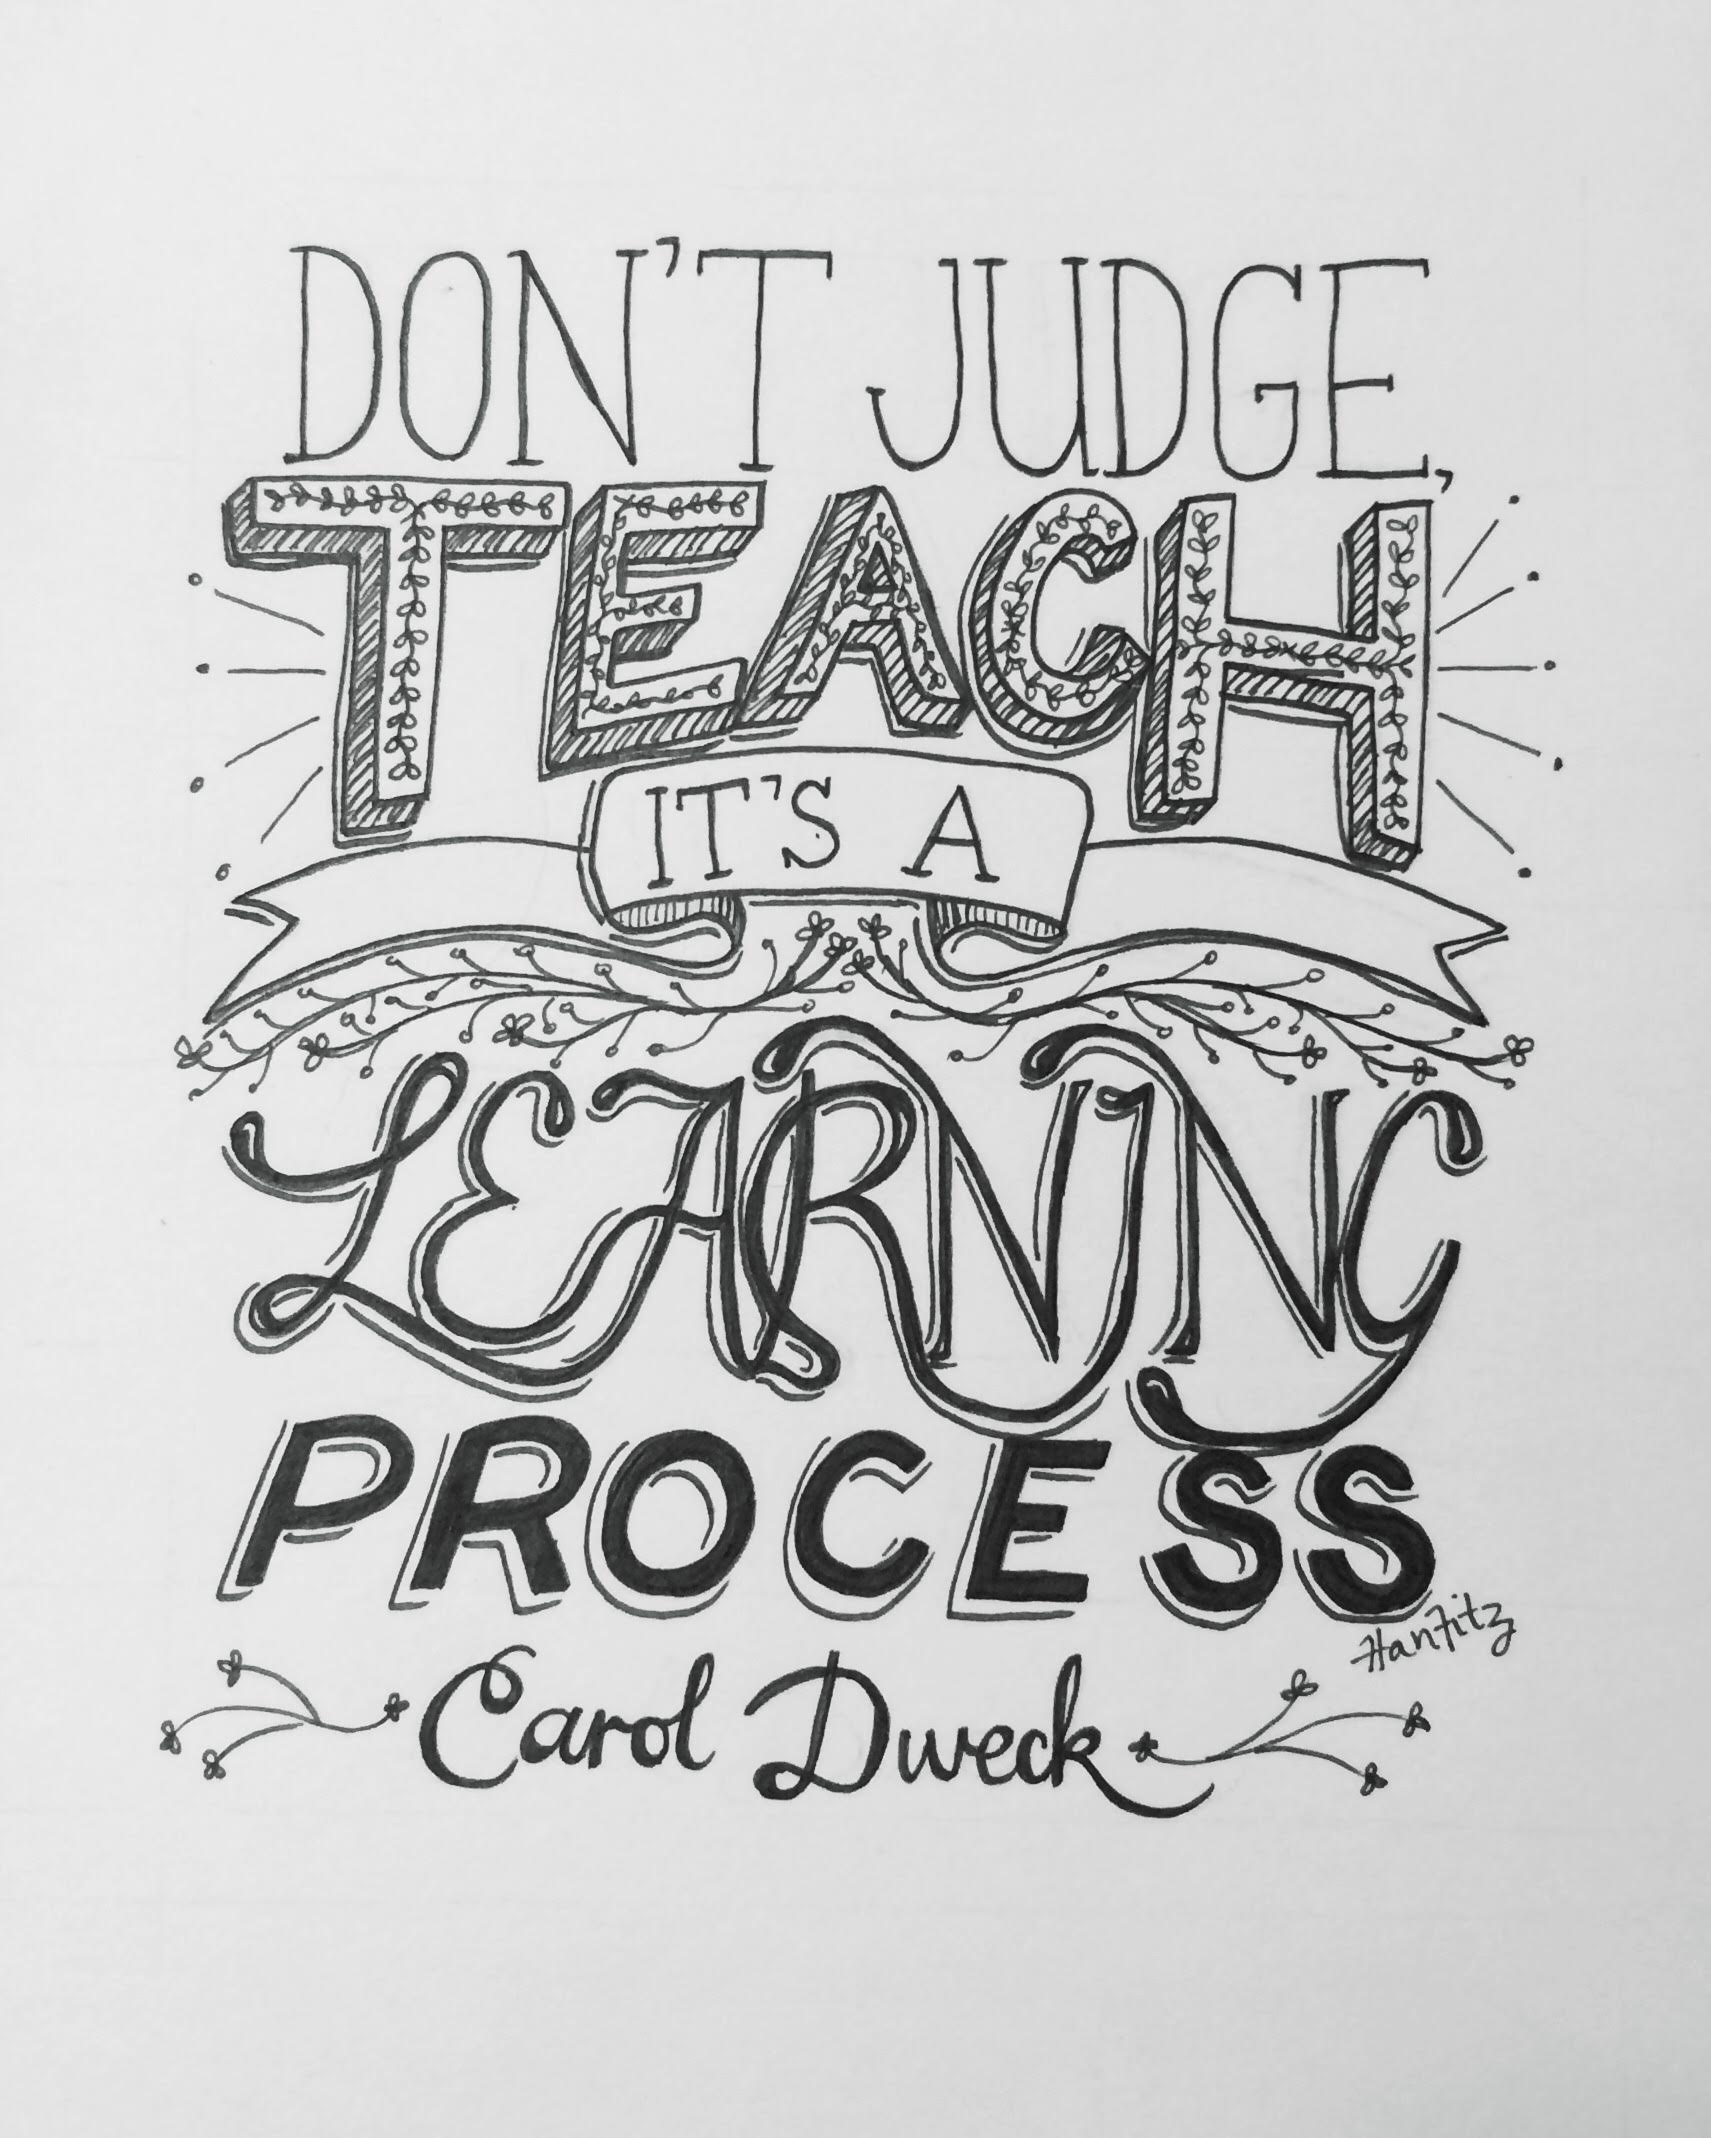 """Don't judge, teach. It's a learning process."" - Carol Dweck"